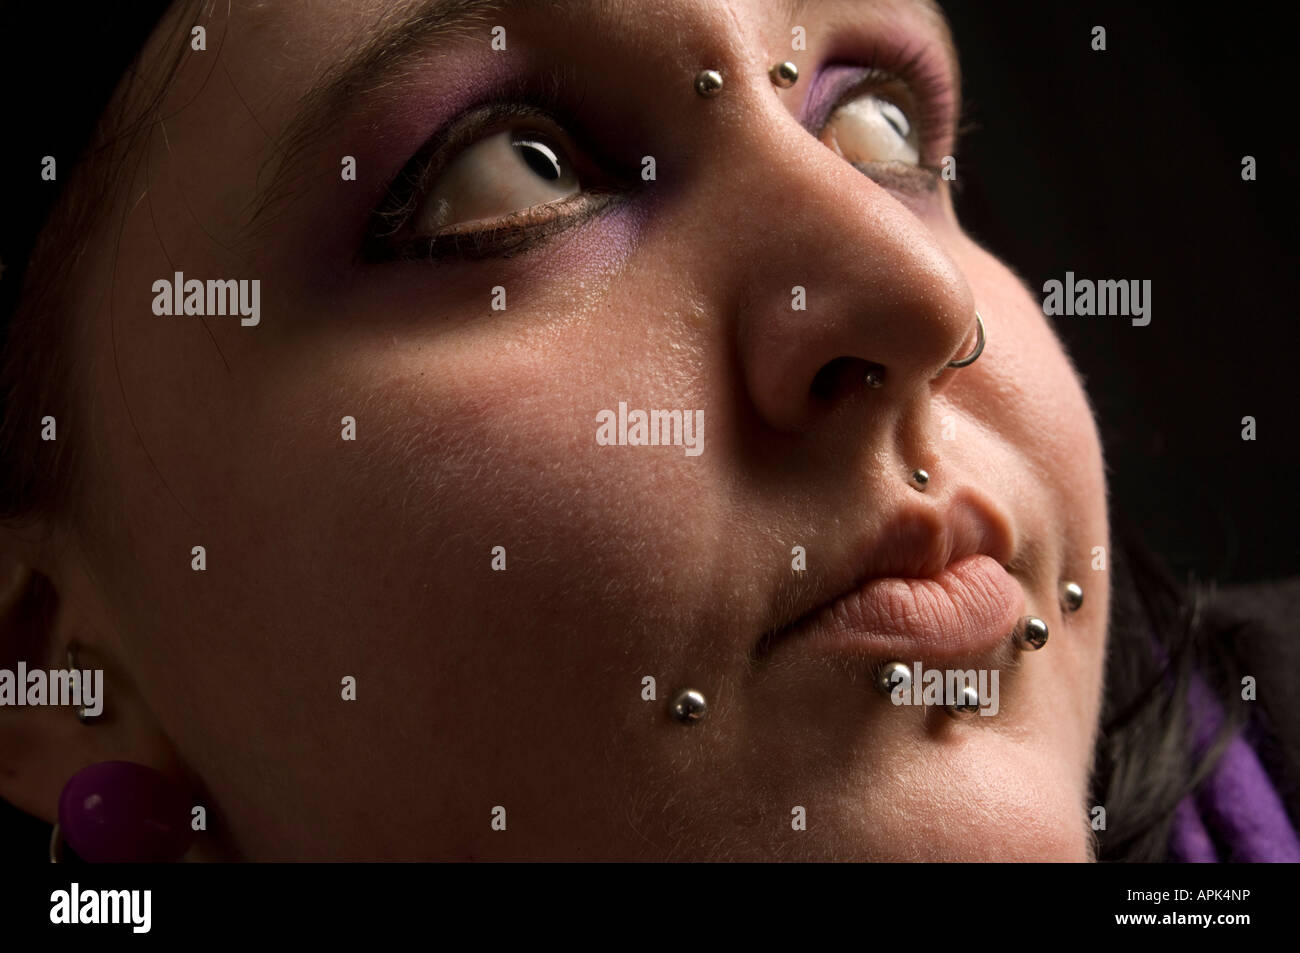 close up of the face of a young chubby welsh woman with multiple piercings in her nose and lips Stock Photo